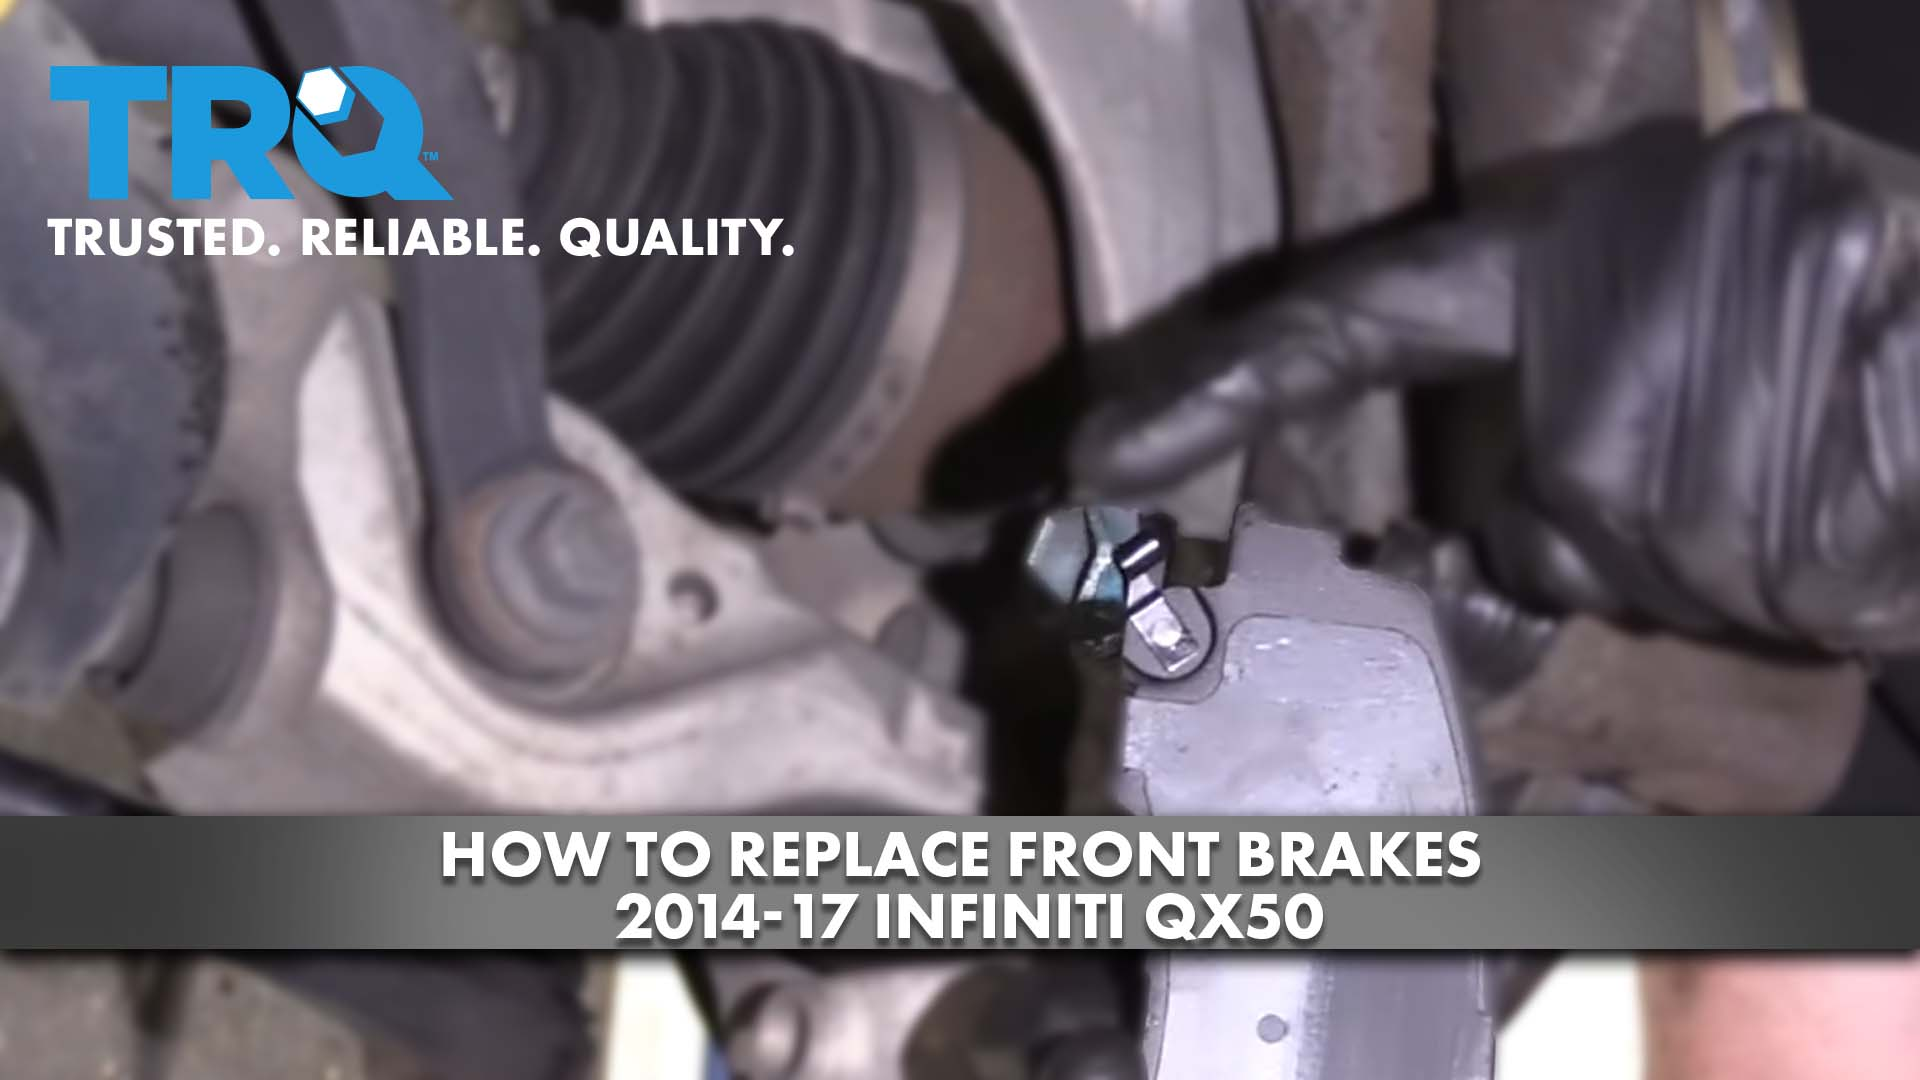 How to Replace Front Brakes 14-17 Infiniti QX50